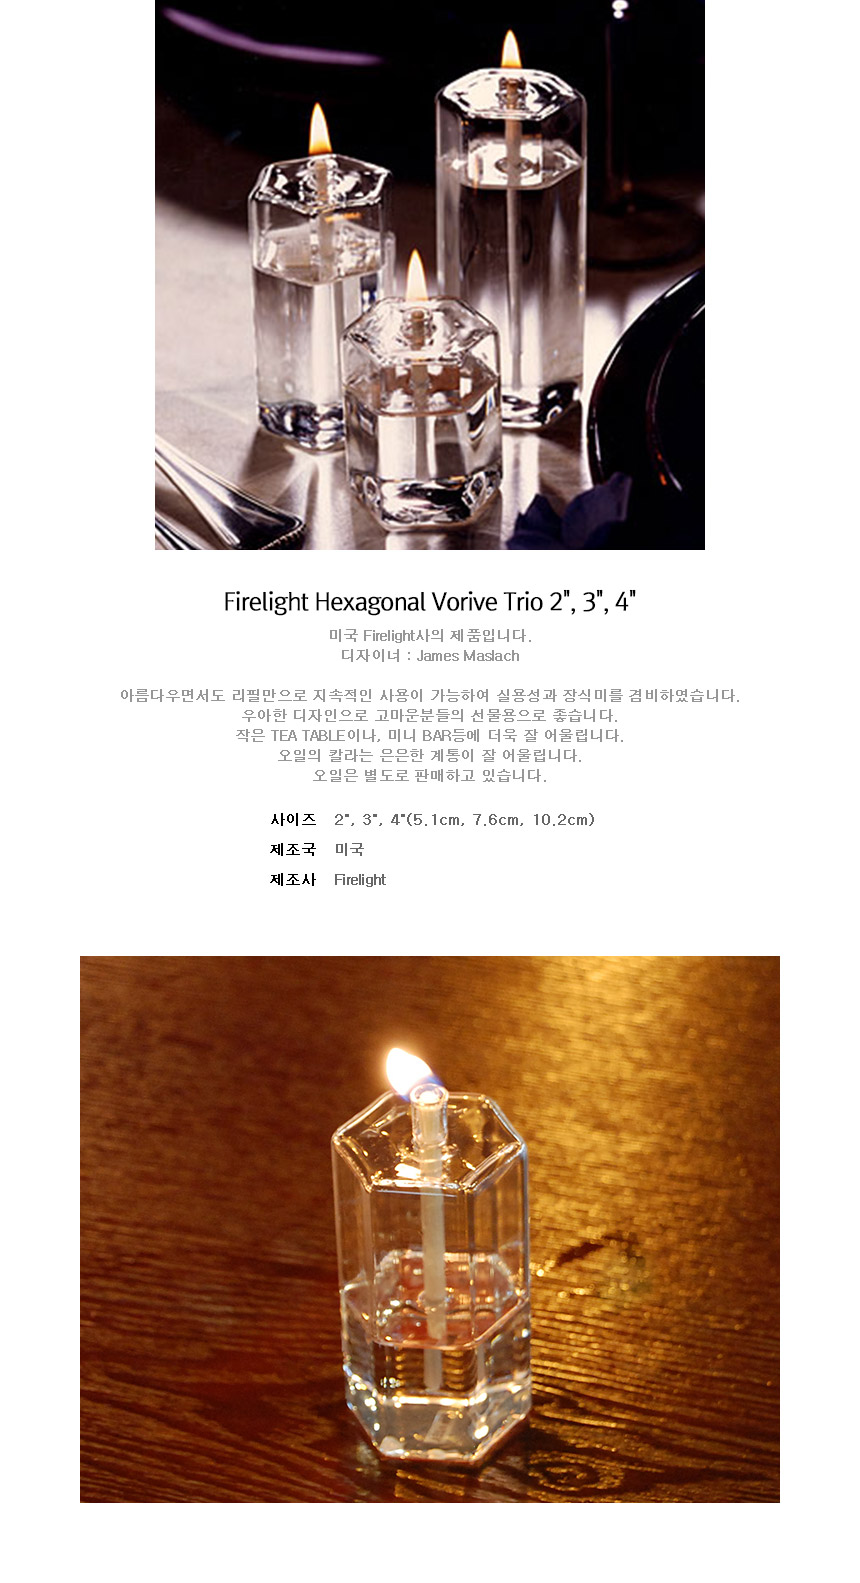 램프플러스 Firelight Hexagonal Votive Trio